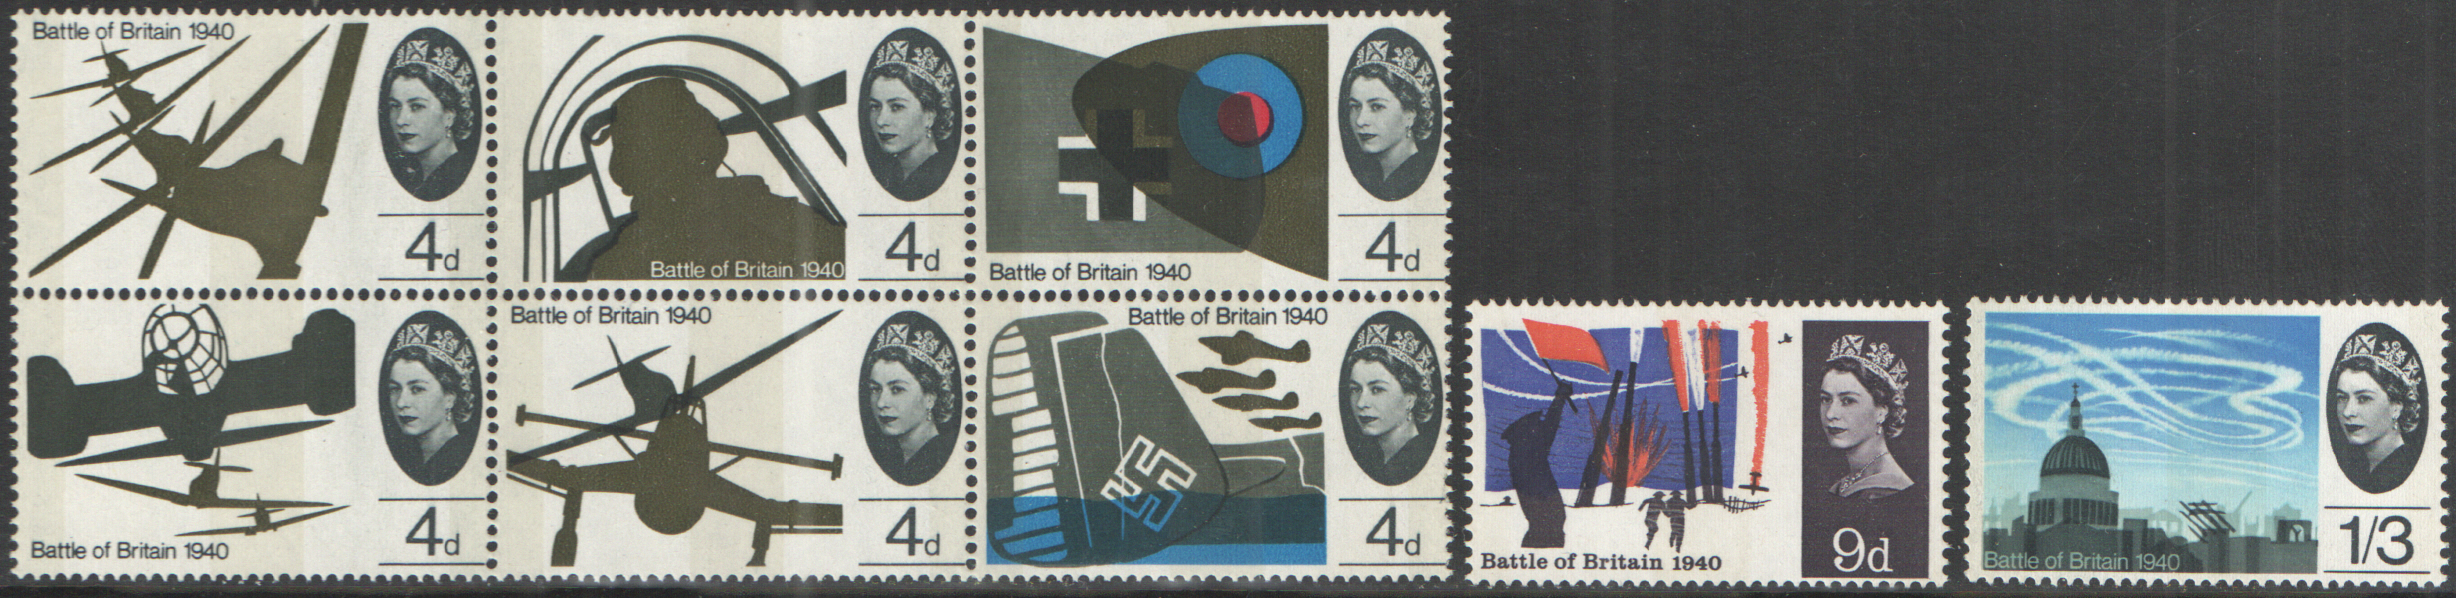 SG671p / 678p 1965 Battle of Britain (Phosphor) unmounted mint set of 8